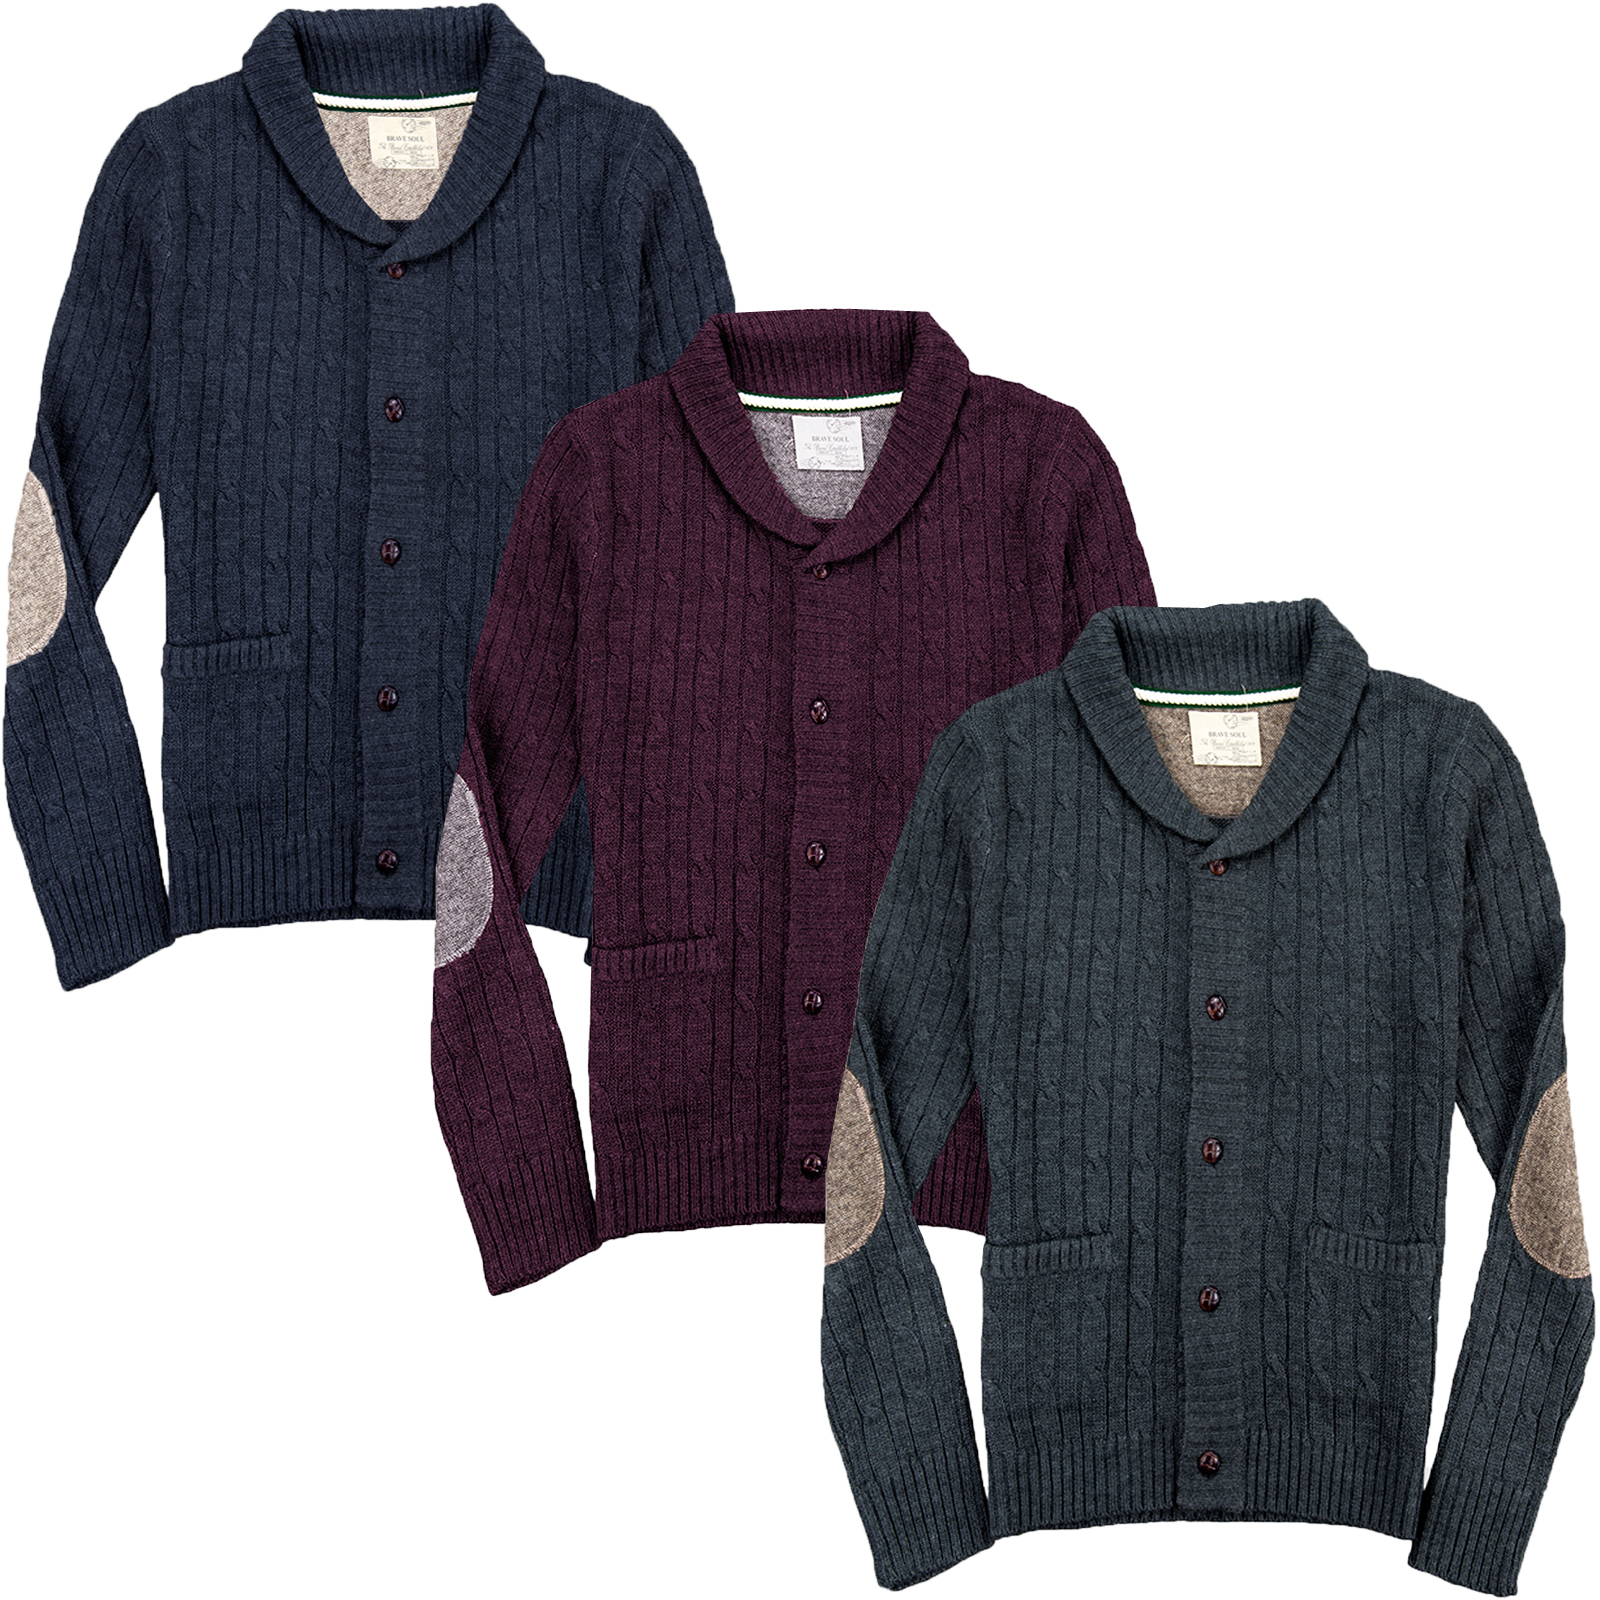 hommes cardigan brave soul neuf tricot grosse maille hiver patchs ch le pull ebay. Black Bedroom Furniture Sets. Home Design Ideas